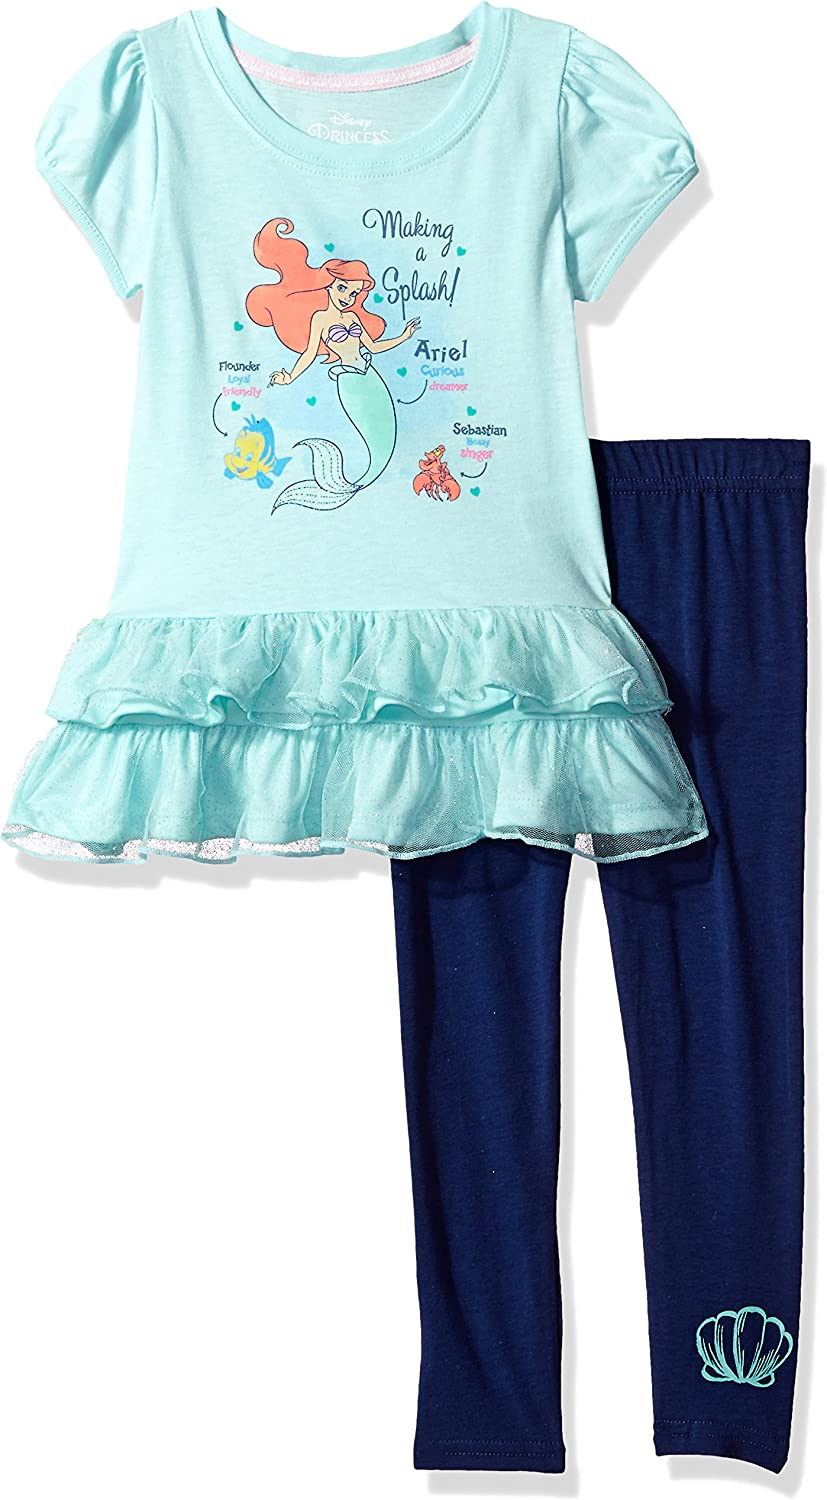 DISNEY THE LITTLE MERMAID ARIEL 3 PIECE OUTFIT SIZE 2T 3T 4T 5T NEW!